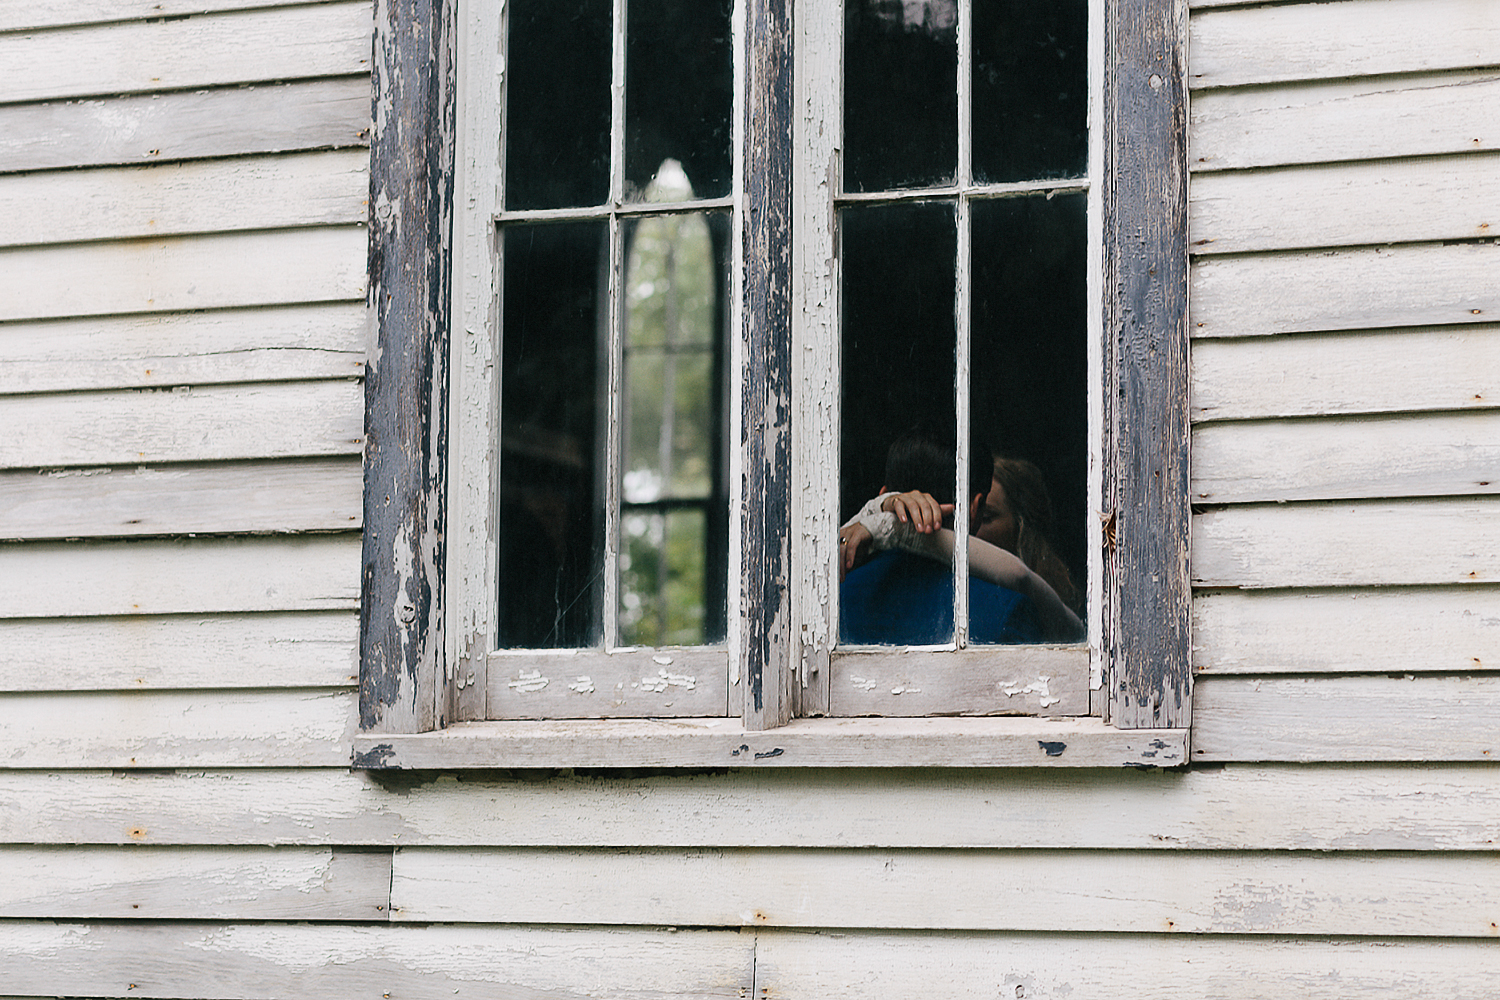 Best-Moody-Documentary-Wedding-Photography-Photojournalism-Vintage-Small-Town-Chapel-Wedding-Toronto-Ontario_Bridal-Portraits-Bride-and-groom-quiet-moment-in-chapel-candid-window.jpg